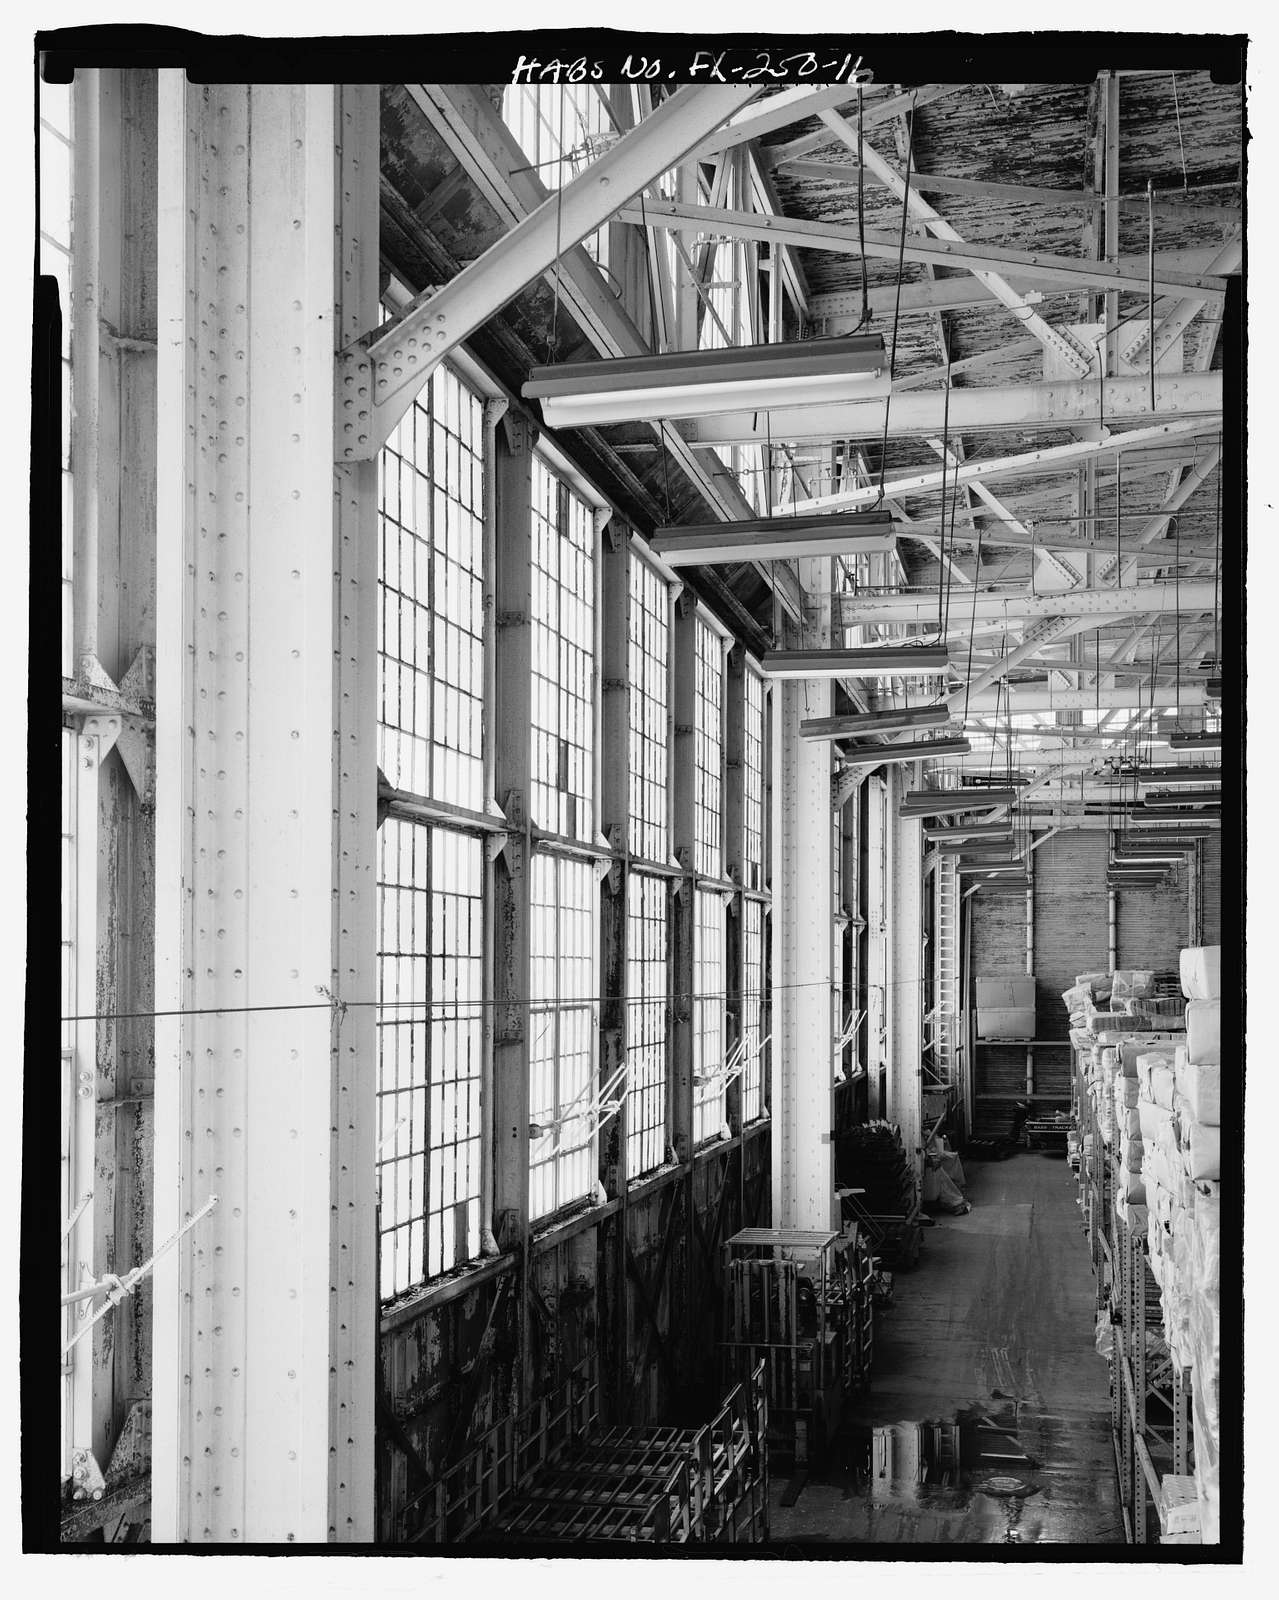 U.S. Naval Air Station, Aircraft Repair Shop, Pensacola, Escambia County, FL